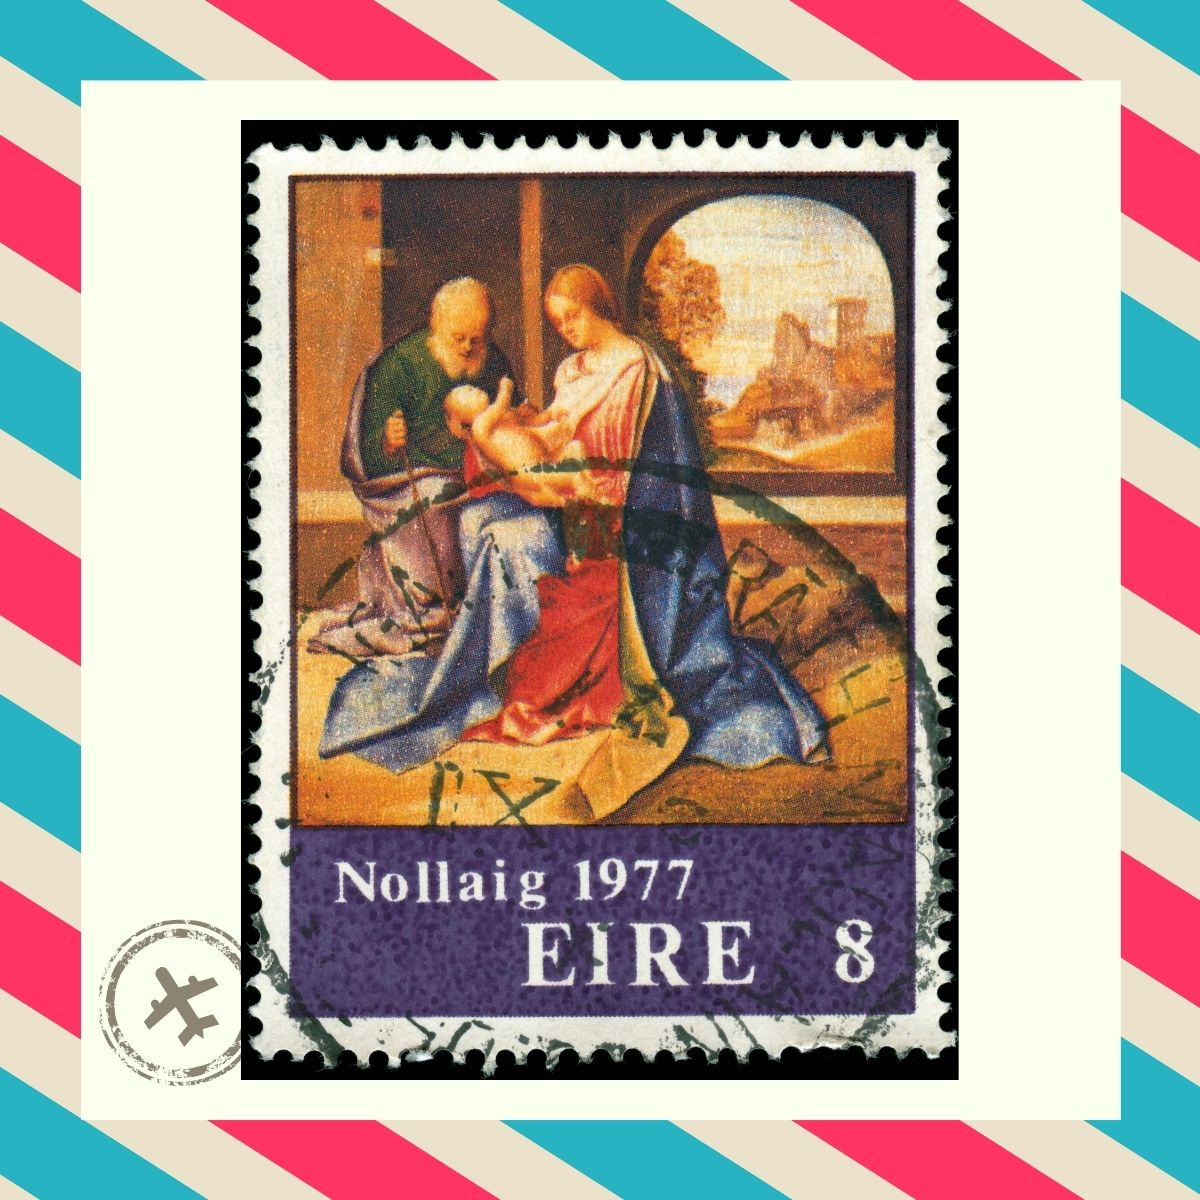 A nativity scene on a stamp surrounded by a striped red and blue airmail pattern